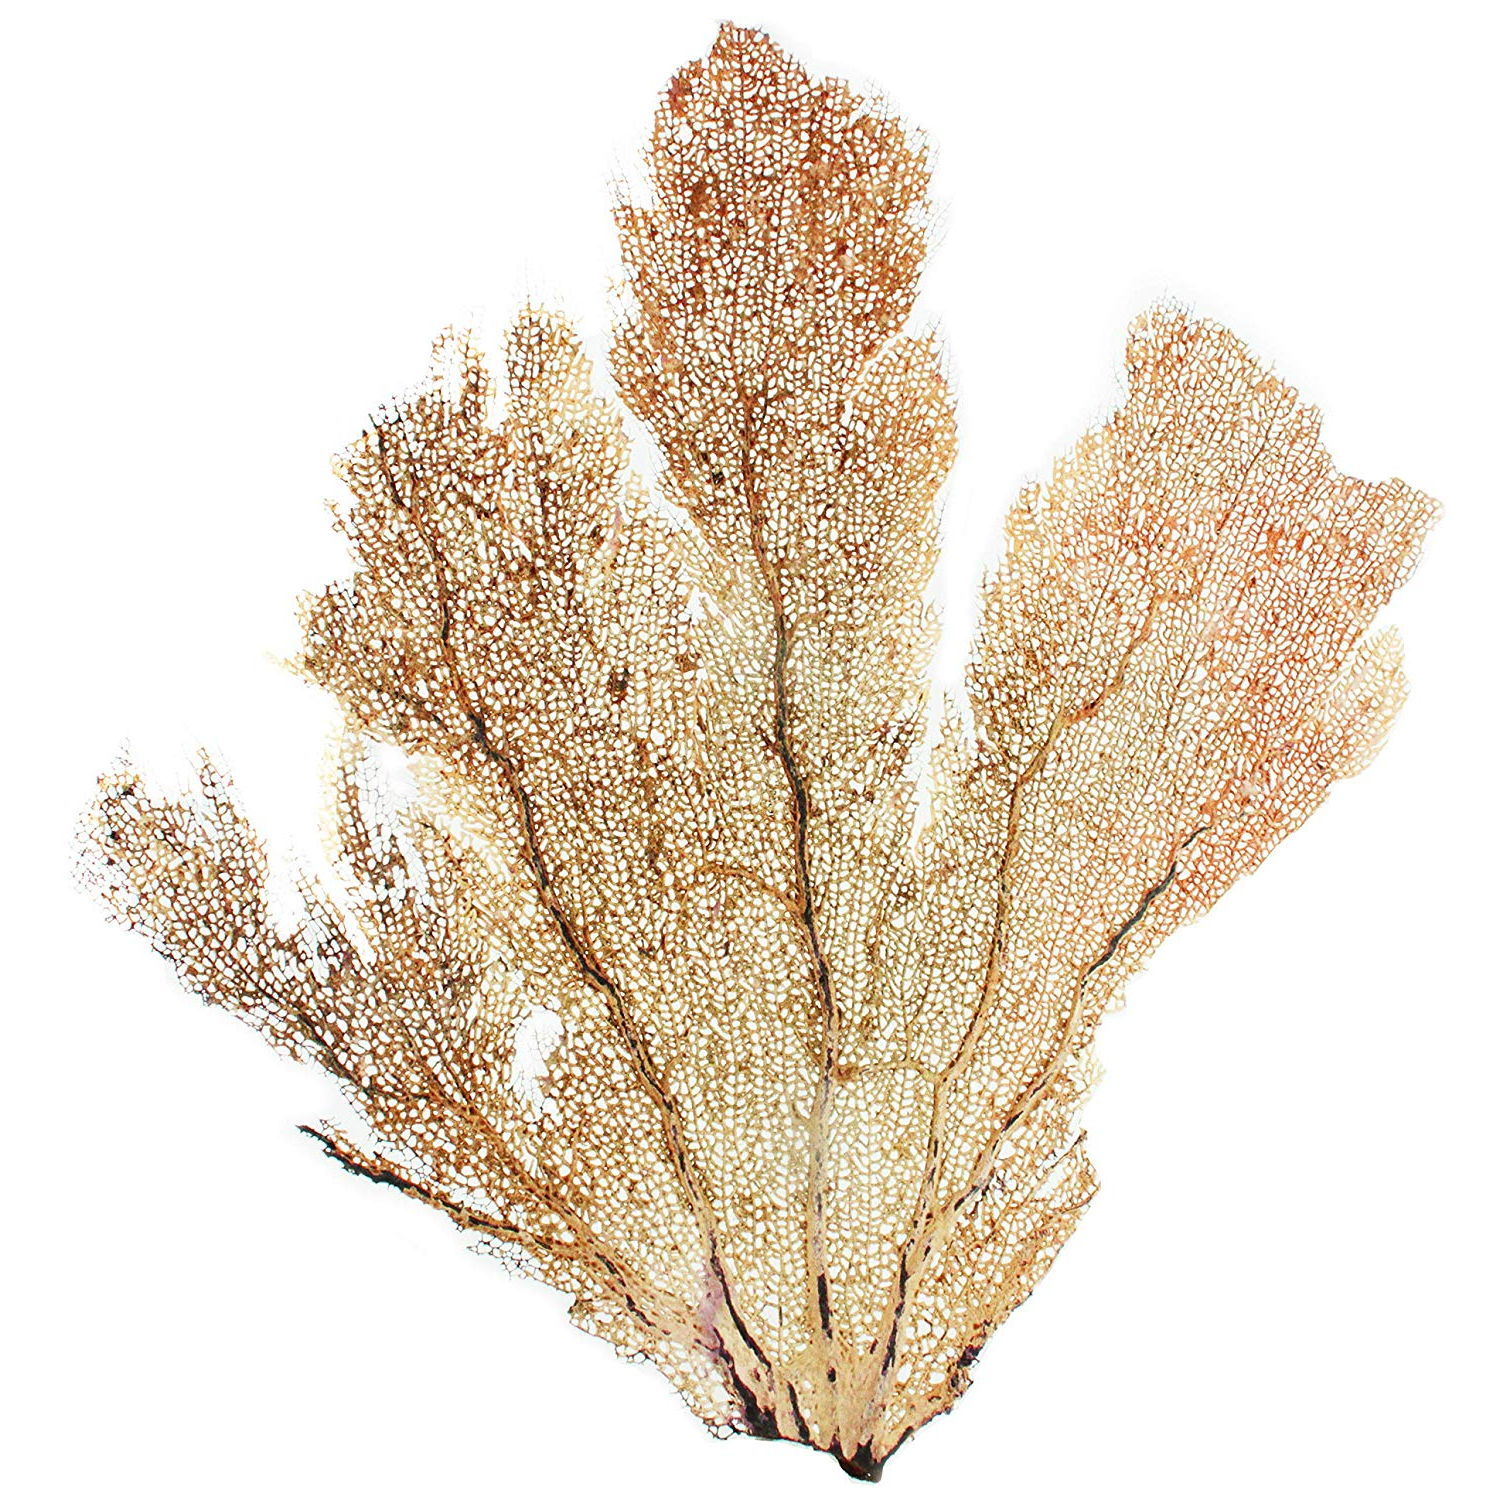 Latest 2 Piece Heart Shaped Fan Wall Decor Sets For Amazon: Slice Of Goodness Natural Decorative Dried Coral Sea (View 5 of 20)